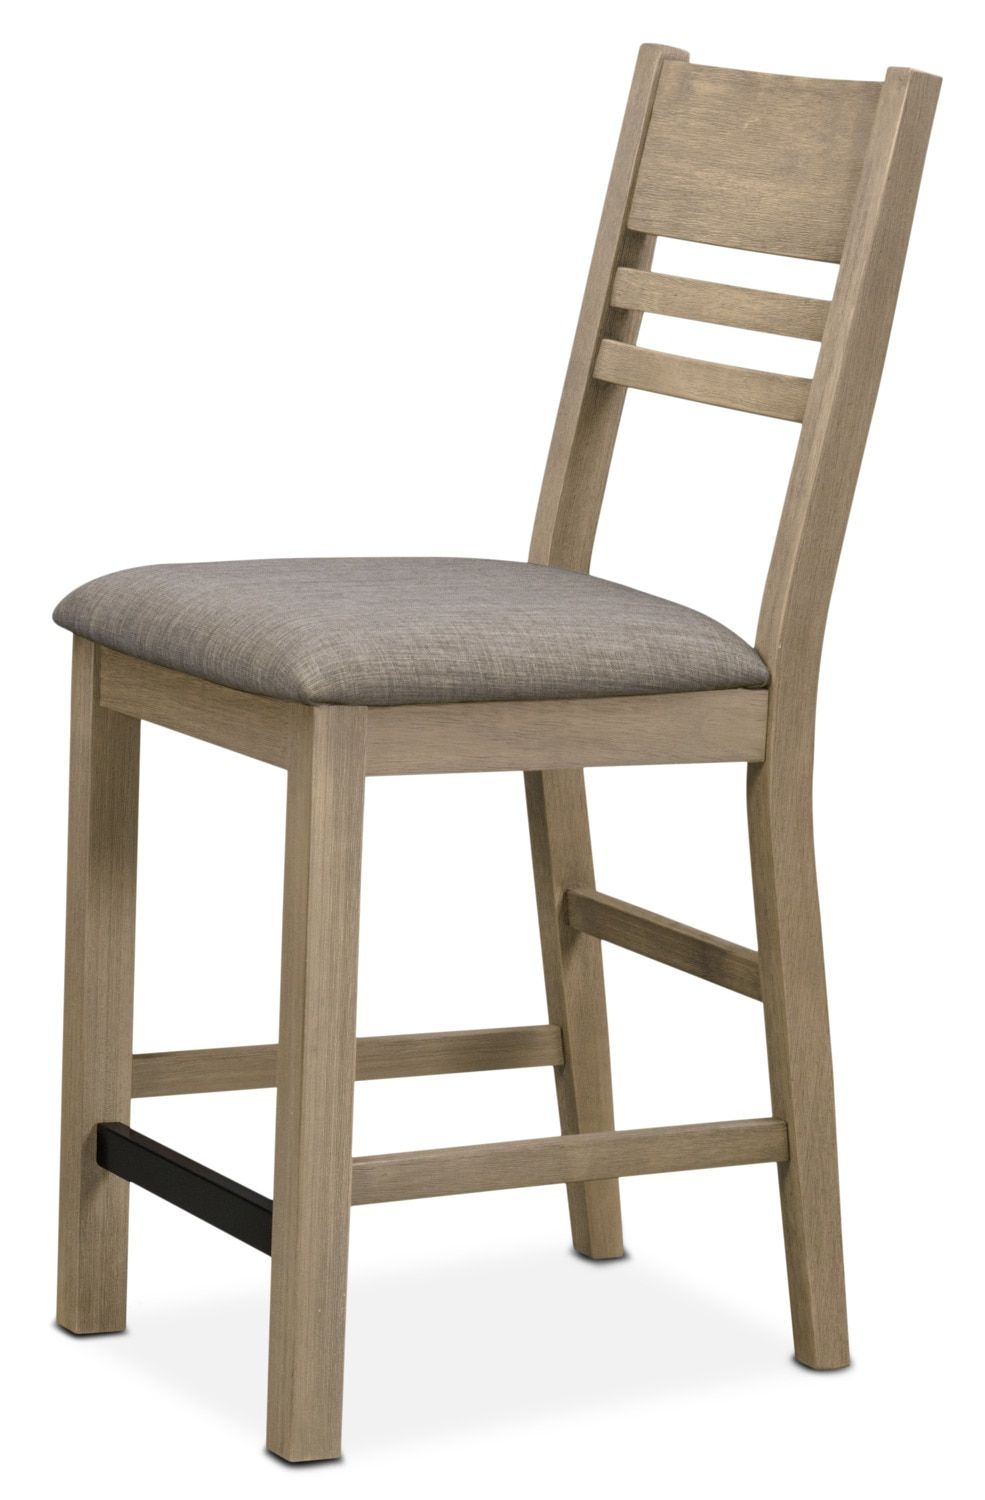 Tribeca Counter-Height Dining Chair   Dining chairs, Side ...